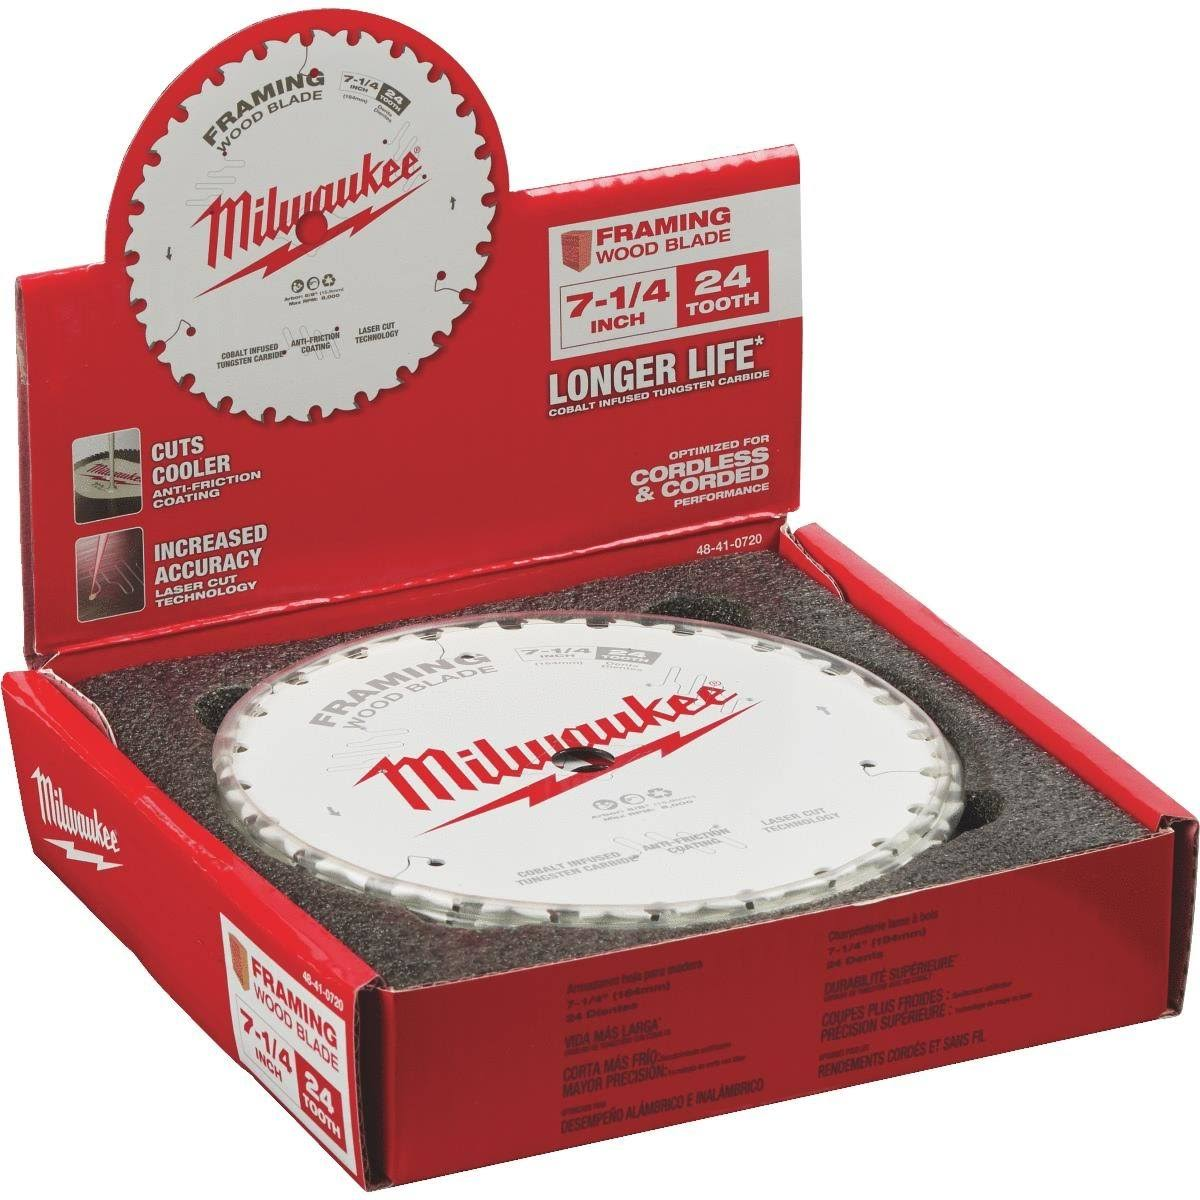 "Milwaukee 7-1/4"" Circular Saw Framing Blade 48-41-0720"